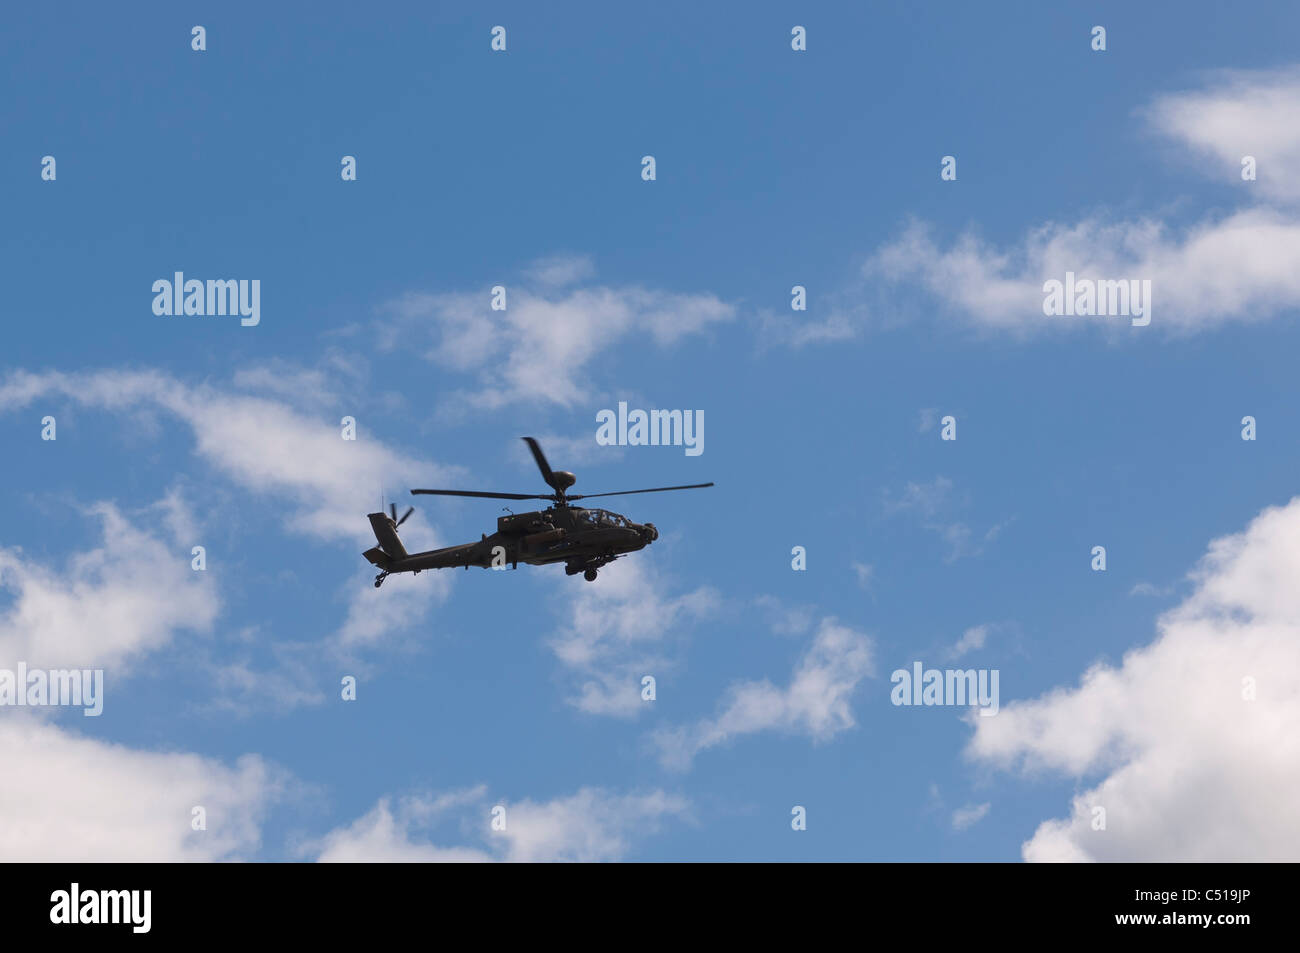 An Apache helicopter flying in the Uk - Stock Image